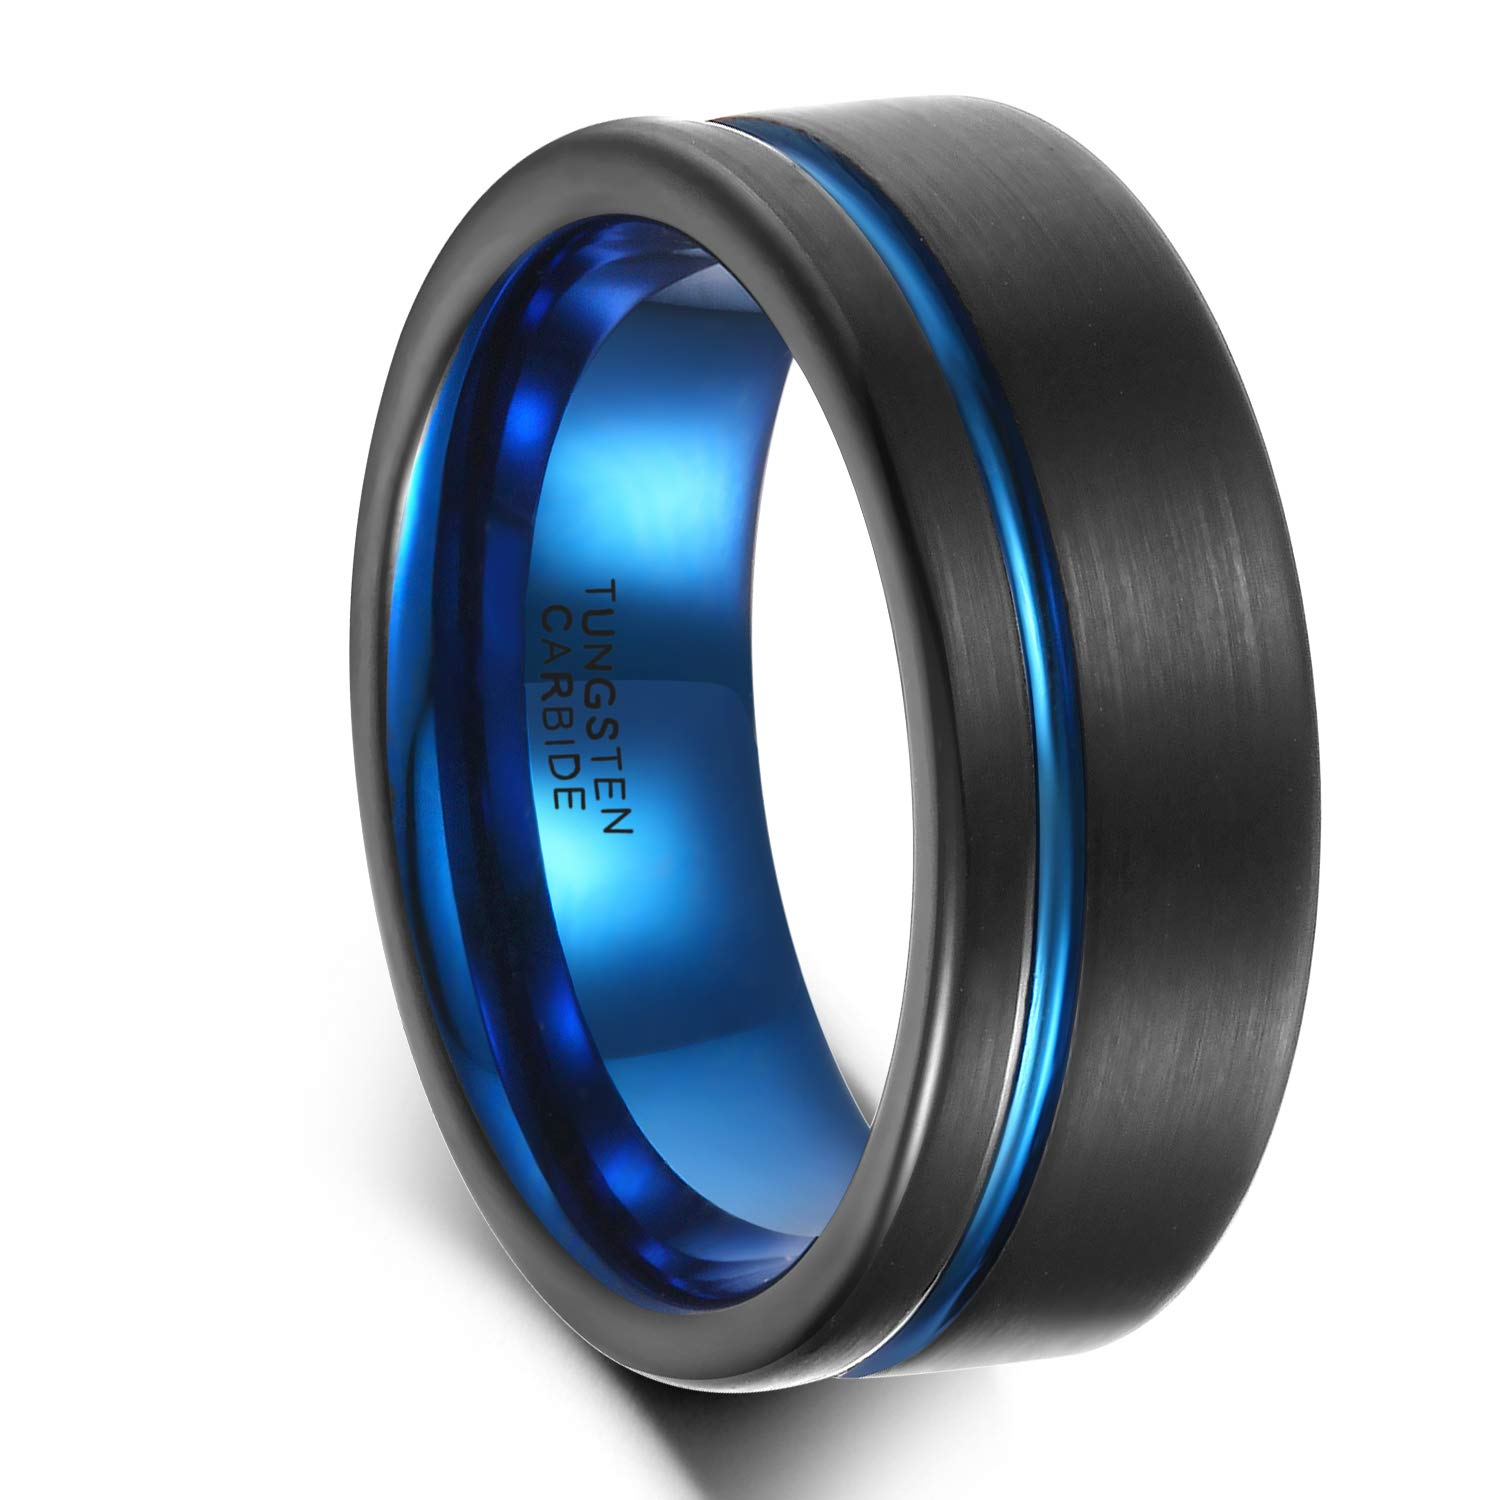 Greenpod 8mm Men's Blue & Black Tungsten Carbide Ring Brushed Matte Finish Flat Two Tone Grooved Wedding Band Size 10